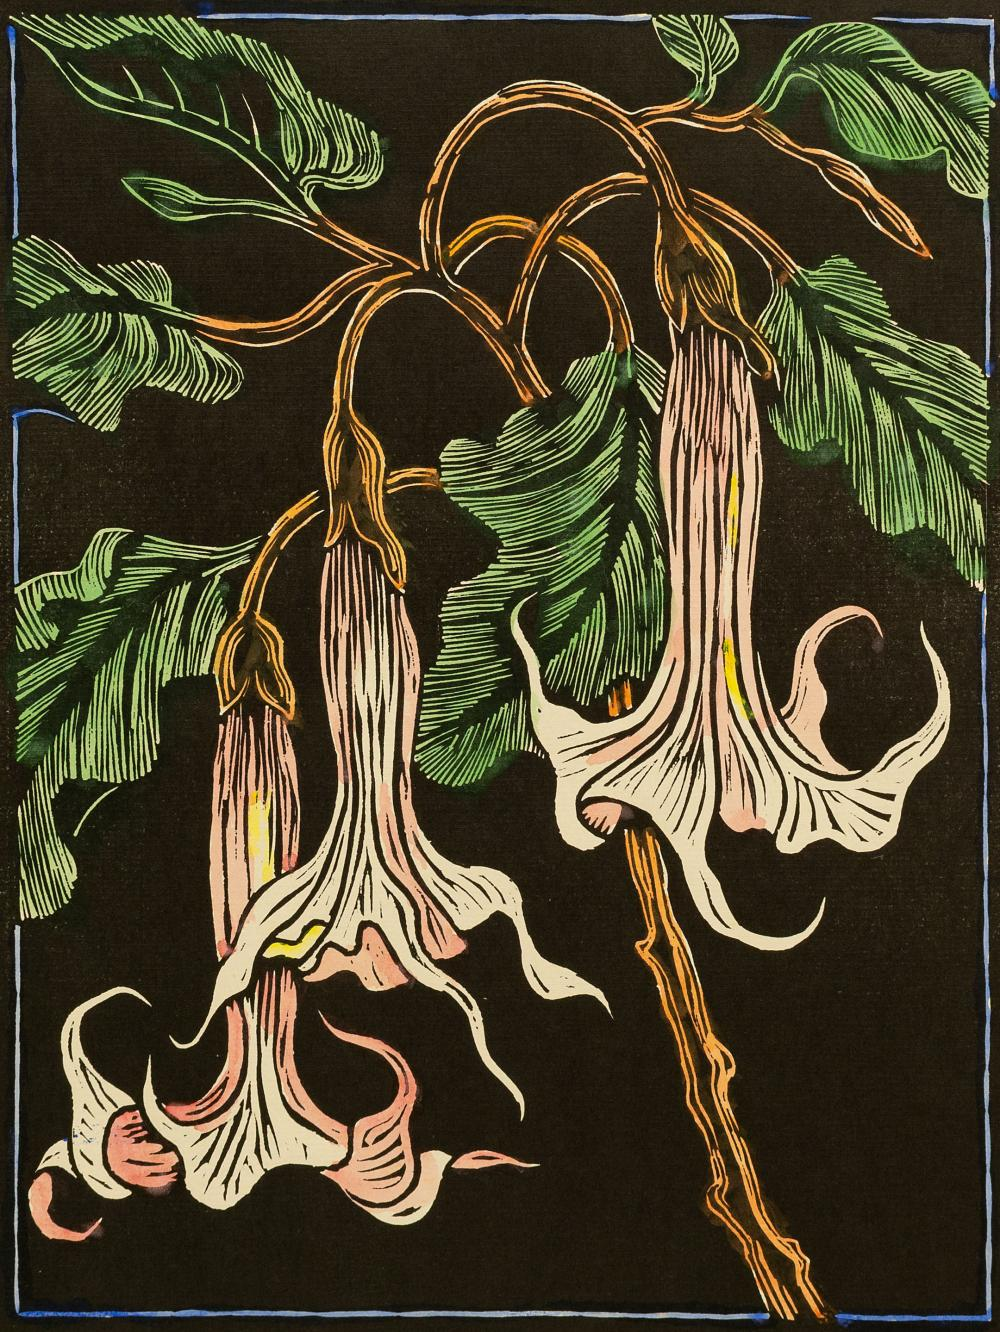 Gregoire Boonzaier (SA 1909 - 2005) Coloured Linocut, Moonflowers, Signed & Dated 1978 in Pencil, 41 x 31 sheet size unframed